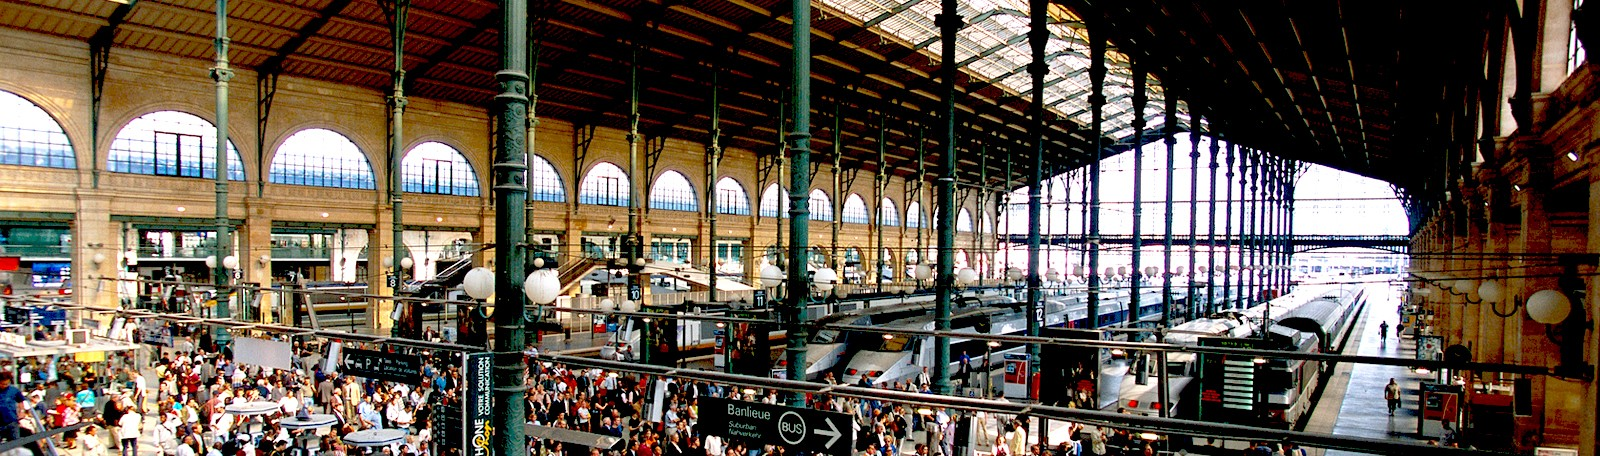 Train station - Stations, public transport - Chartres